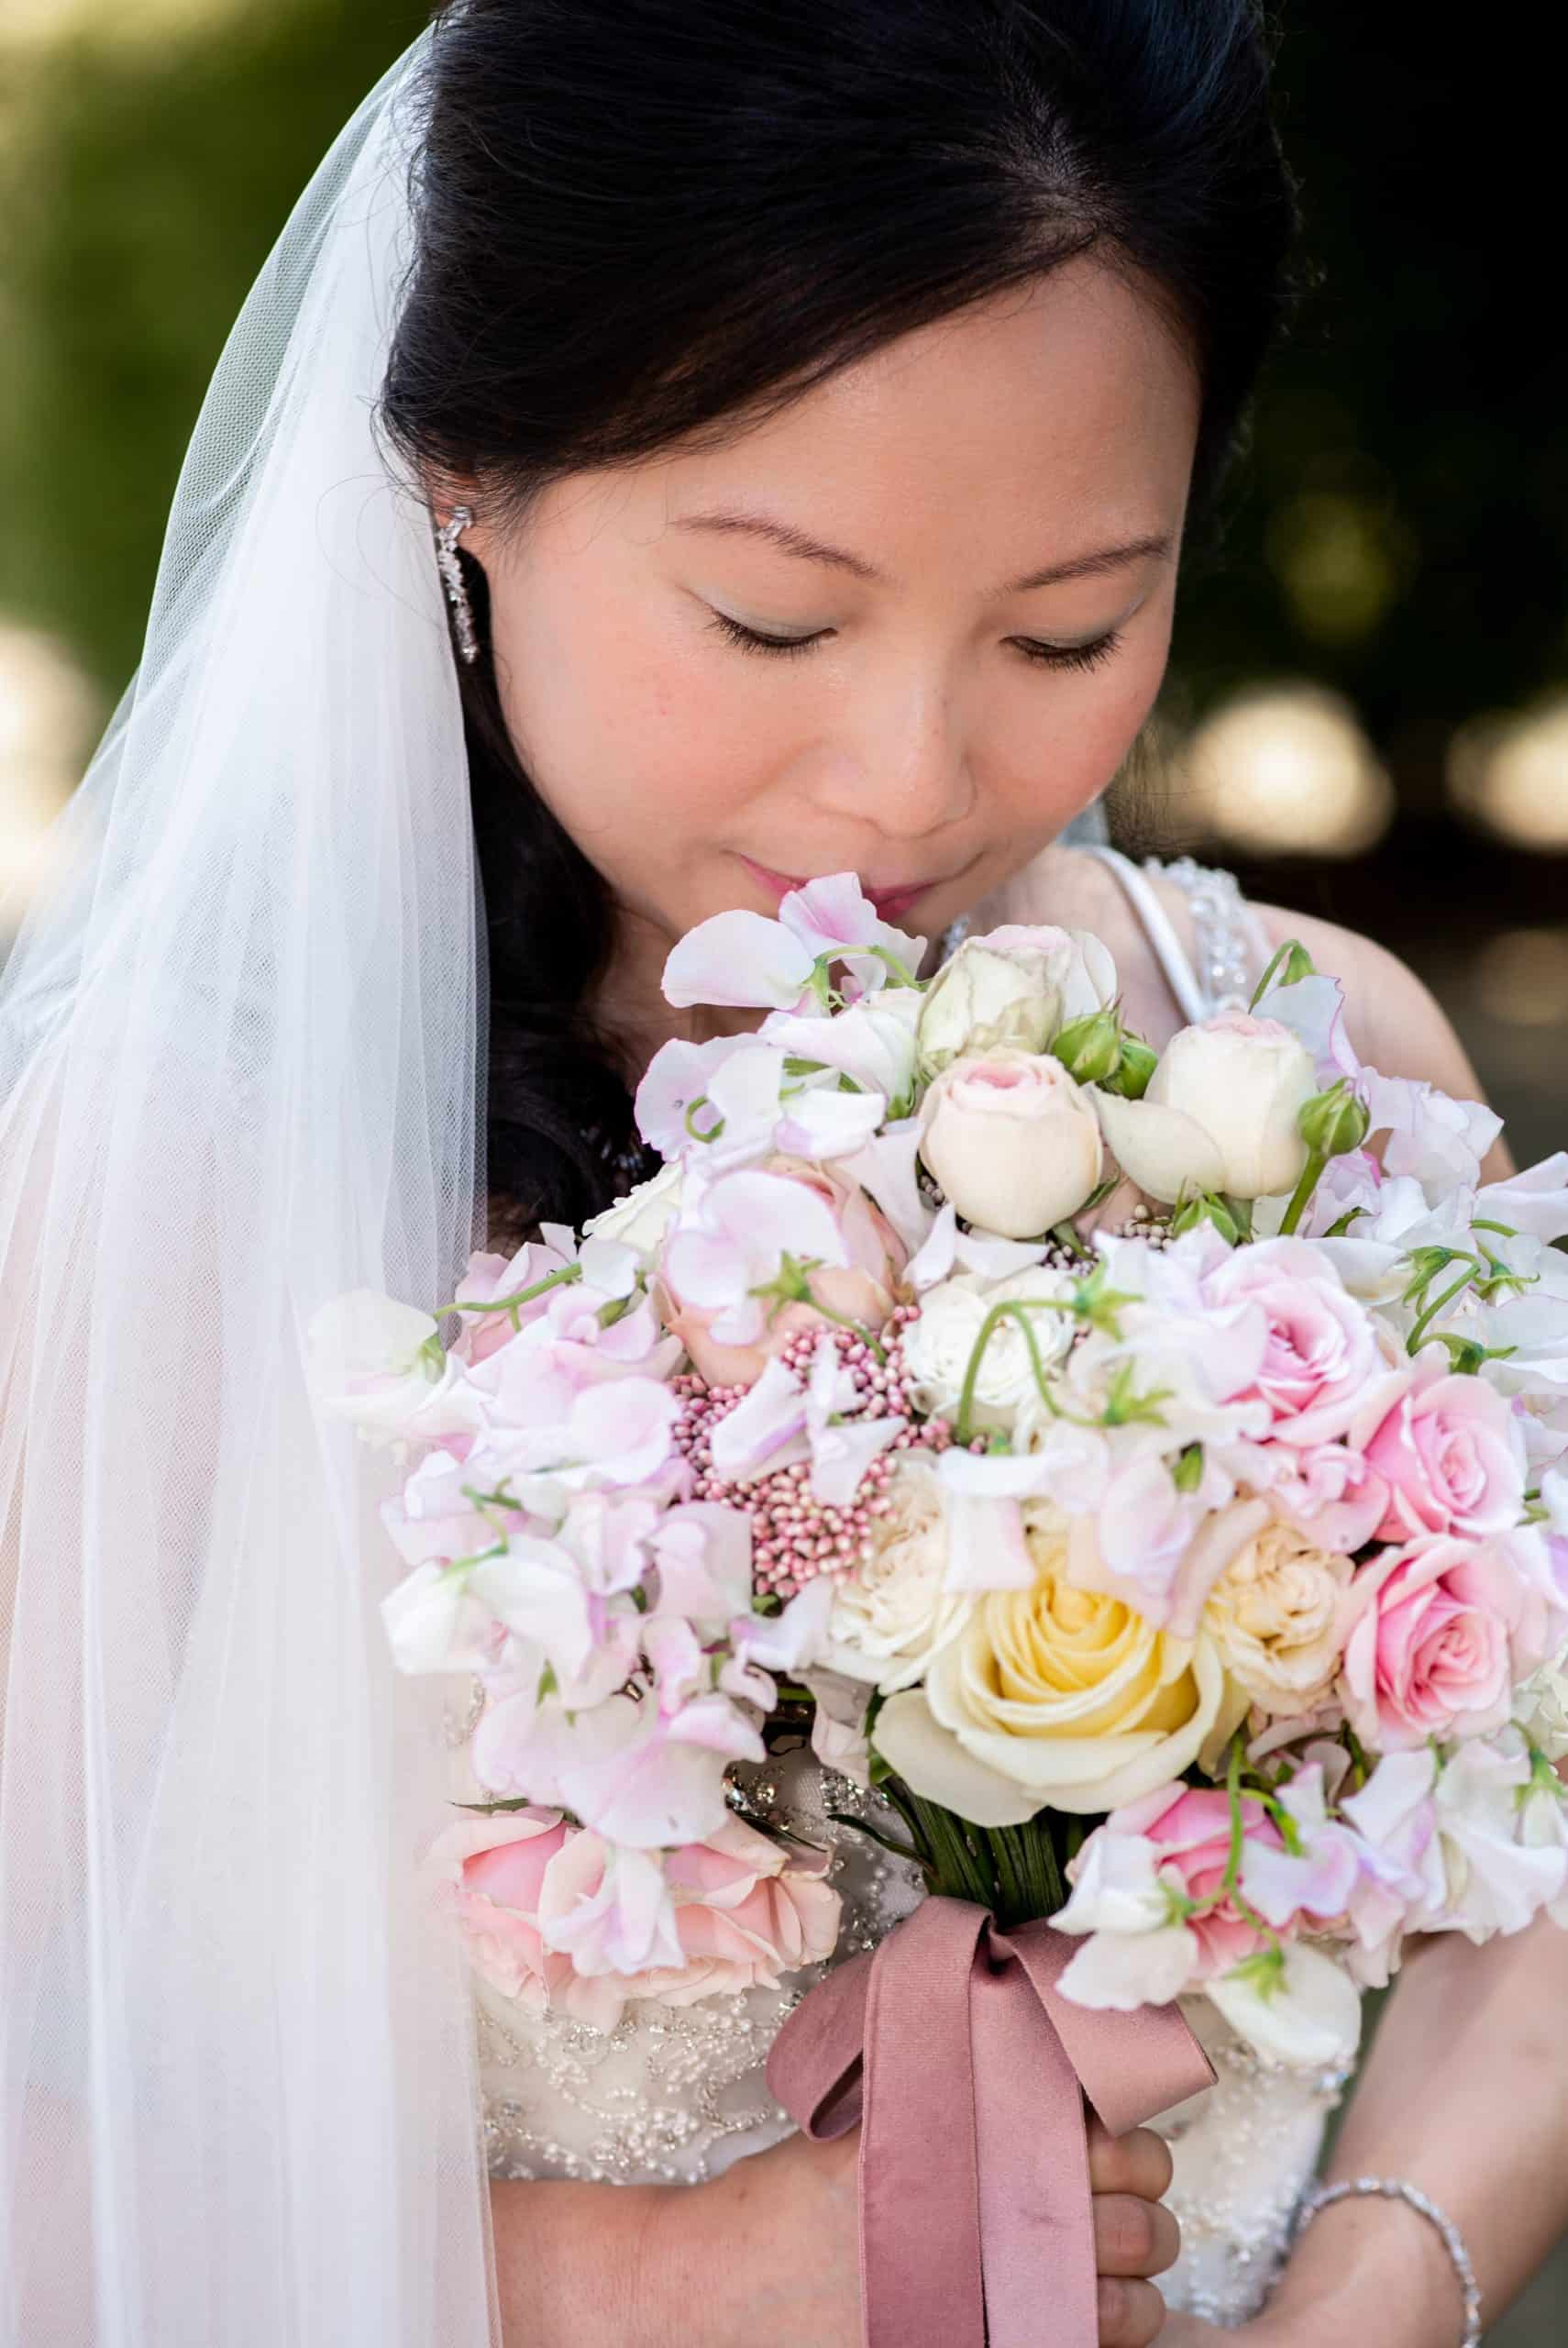 Bride holding her bouquet smiling, light and airy wedding photo